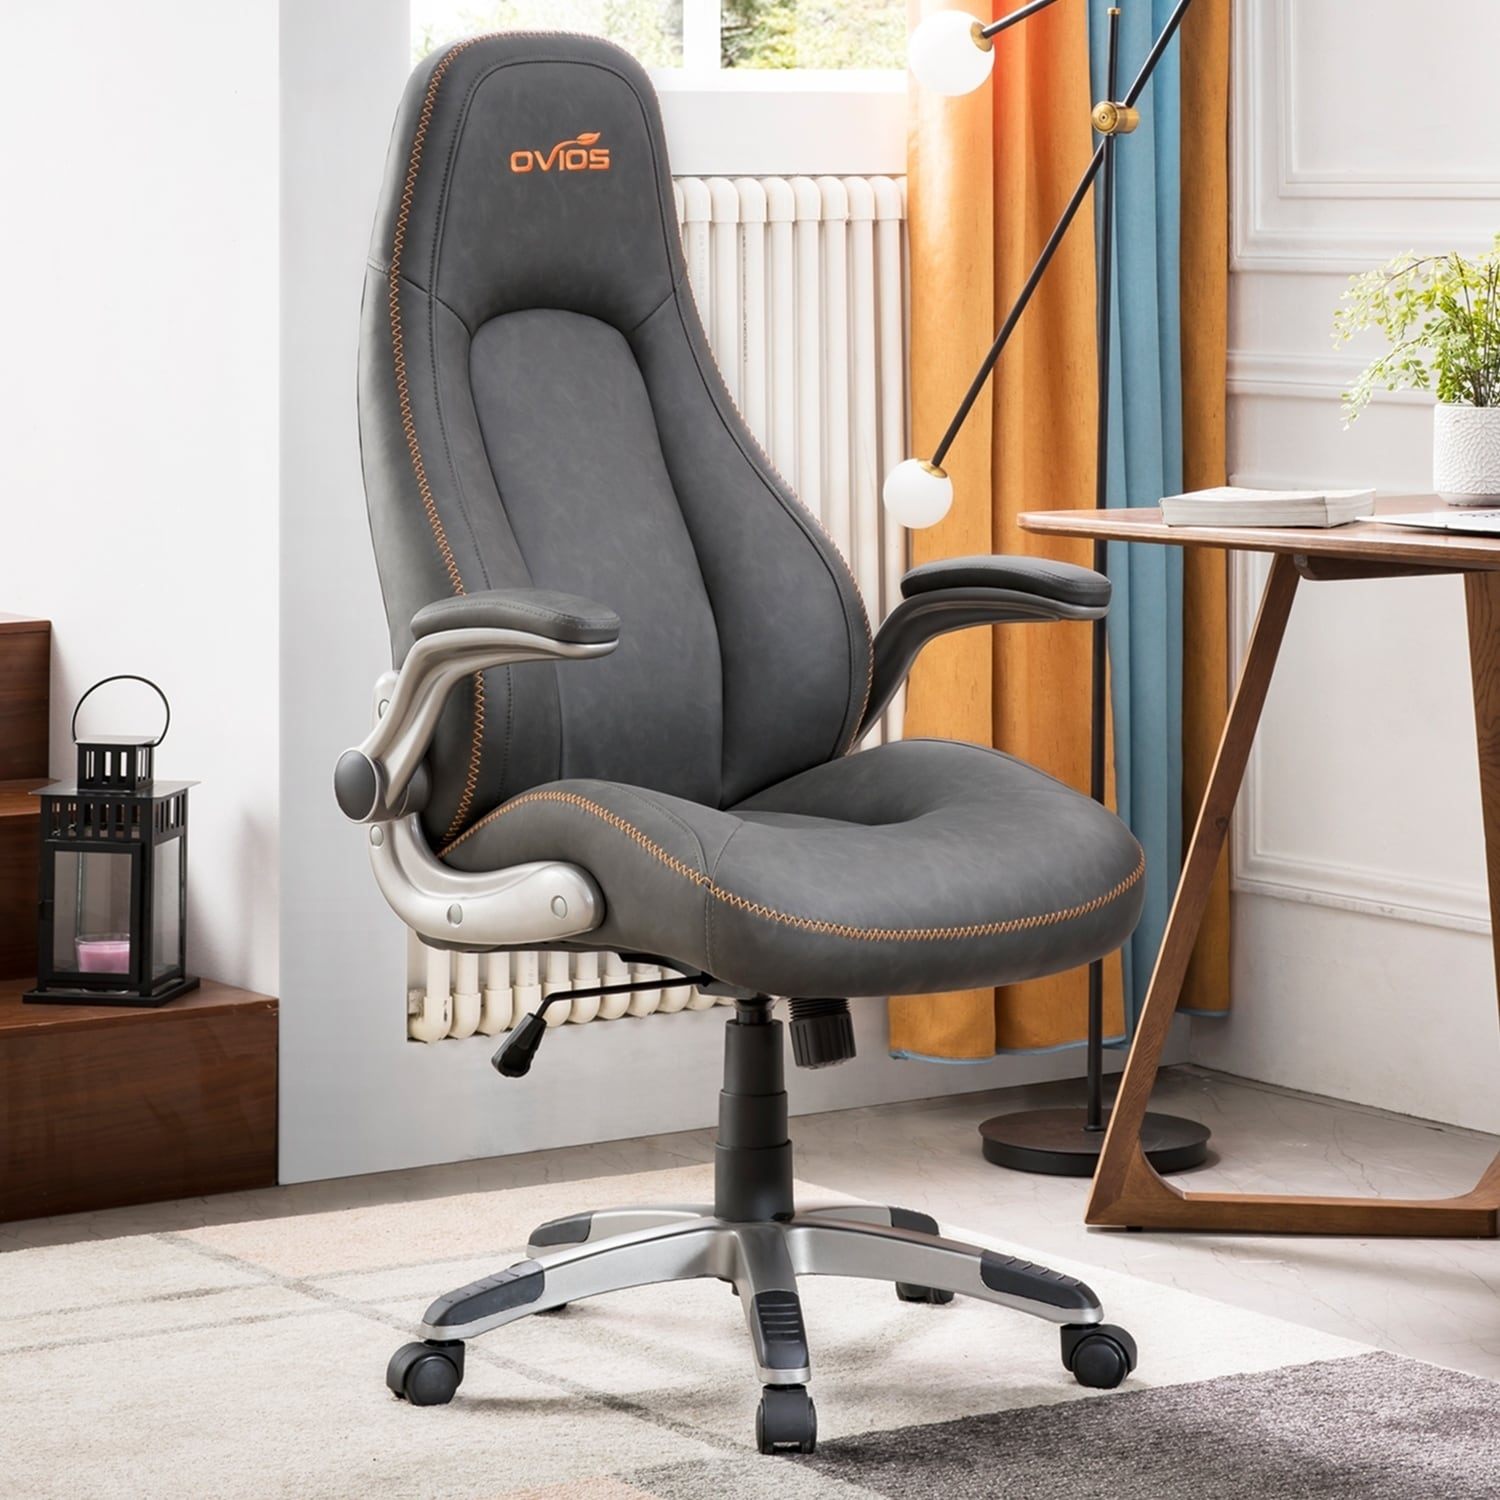 Ovios Executive Office Chair High Back Desk Chair Leather Computer Desk Chair For Home Office Dark Brown Managerial Executive Chairs Office Products